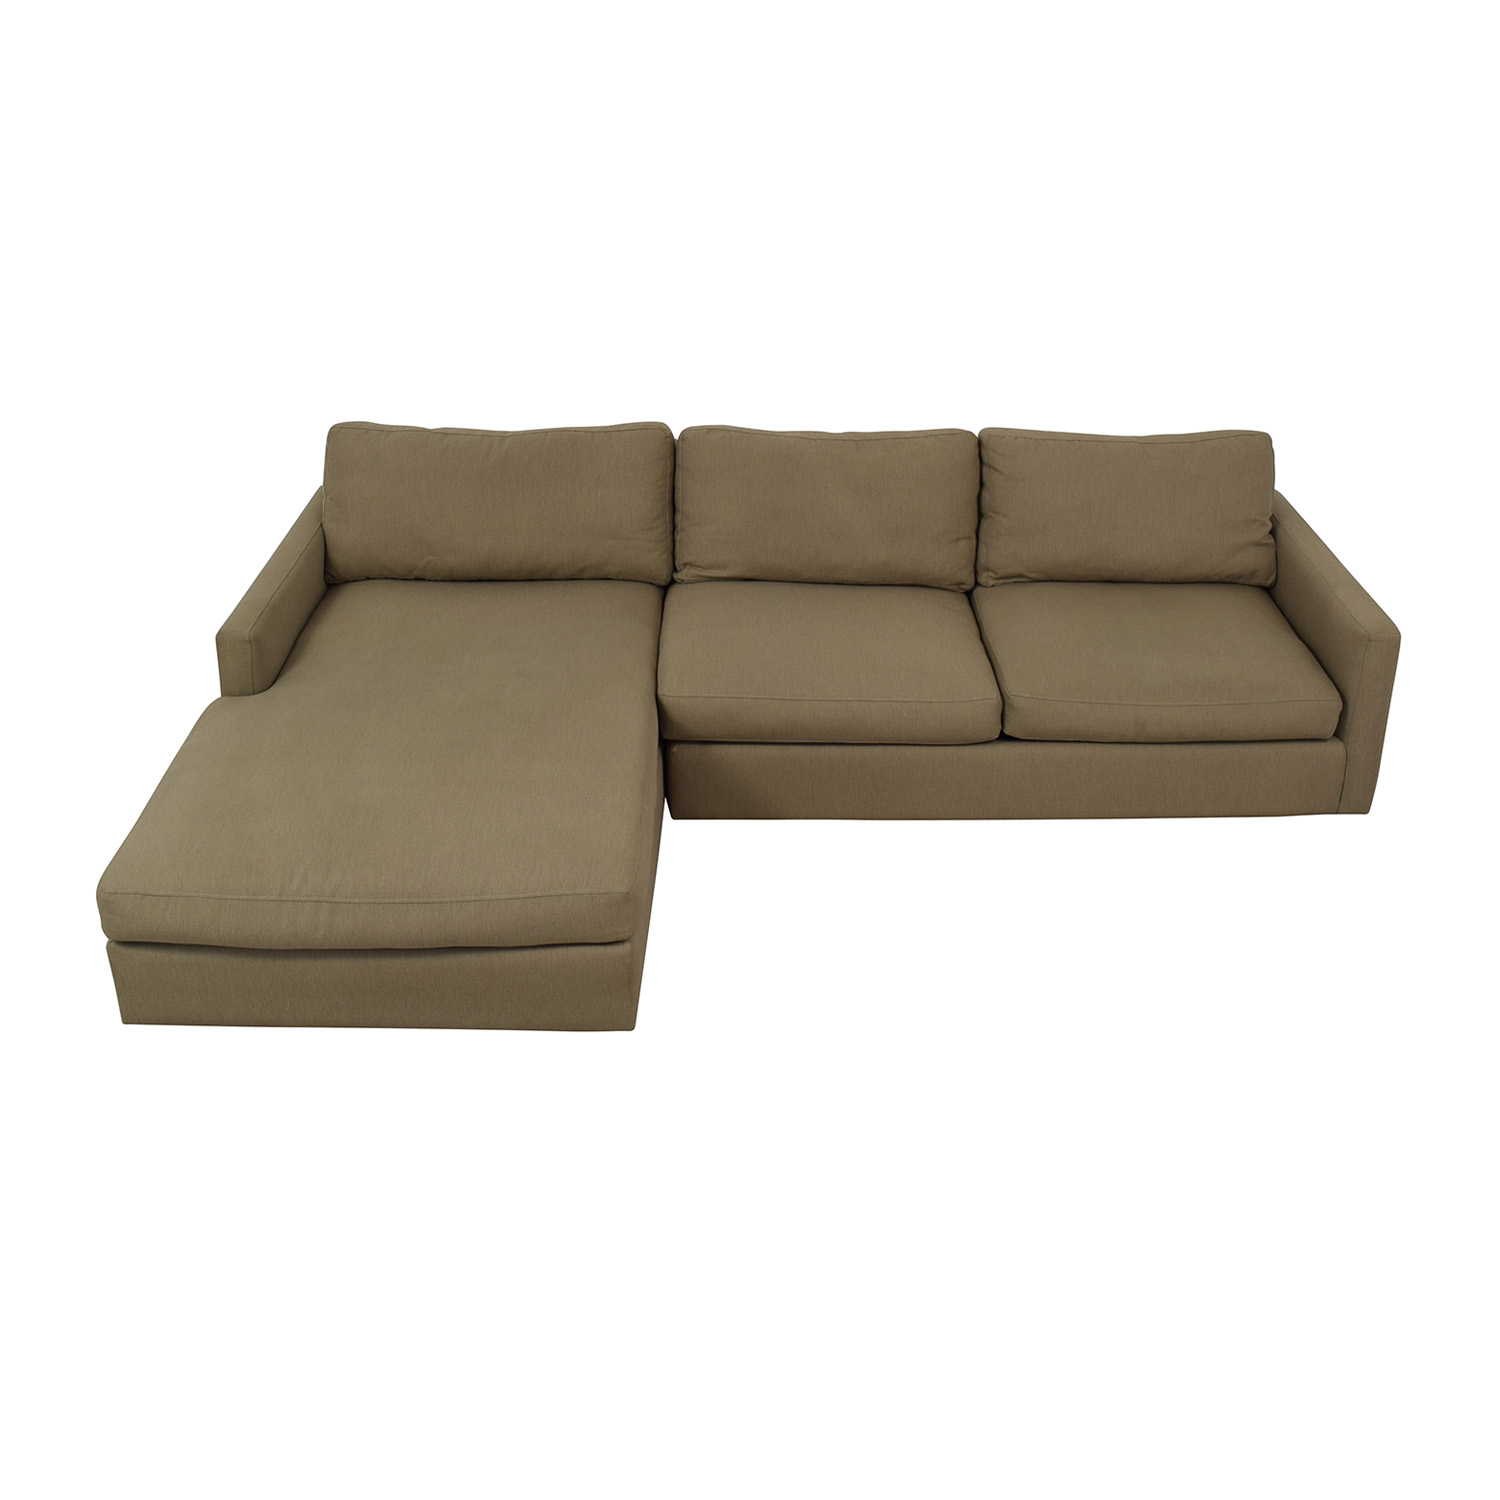 Room & Board Room & Board Easton Sofa with Left-Arm Chaise nyc